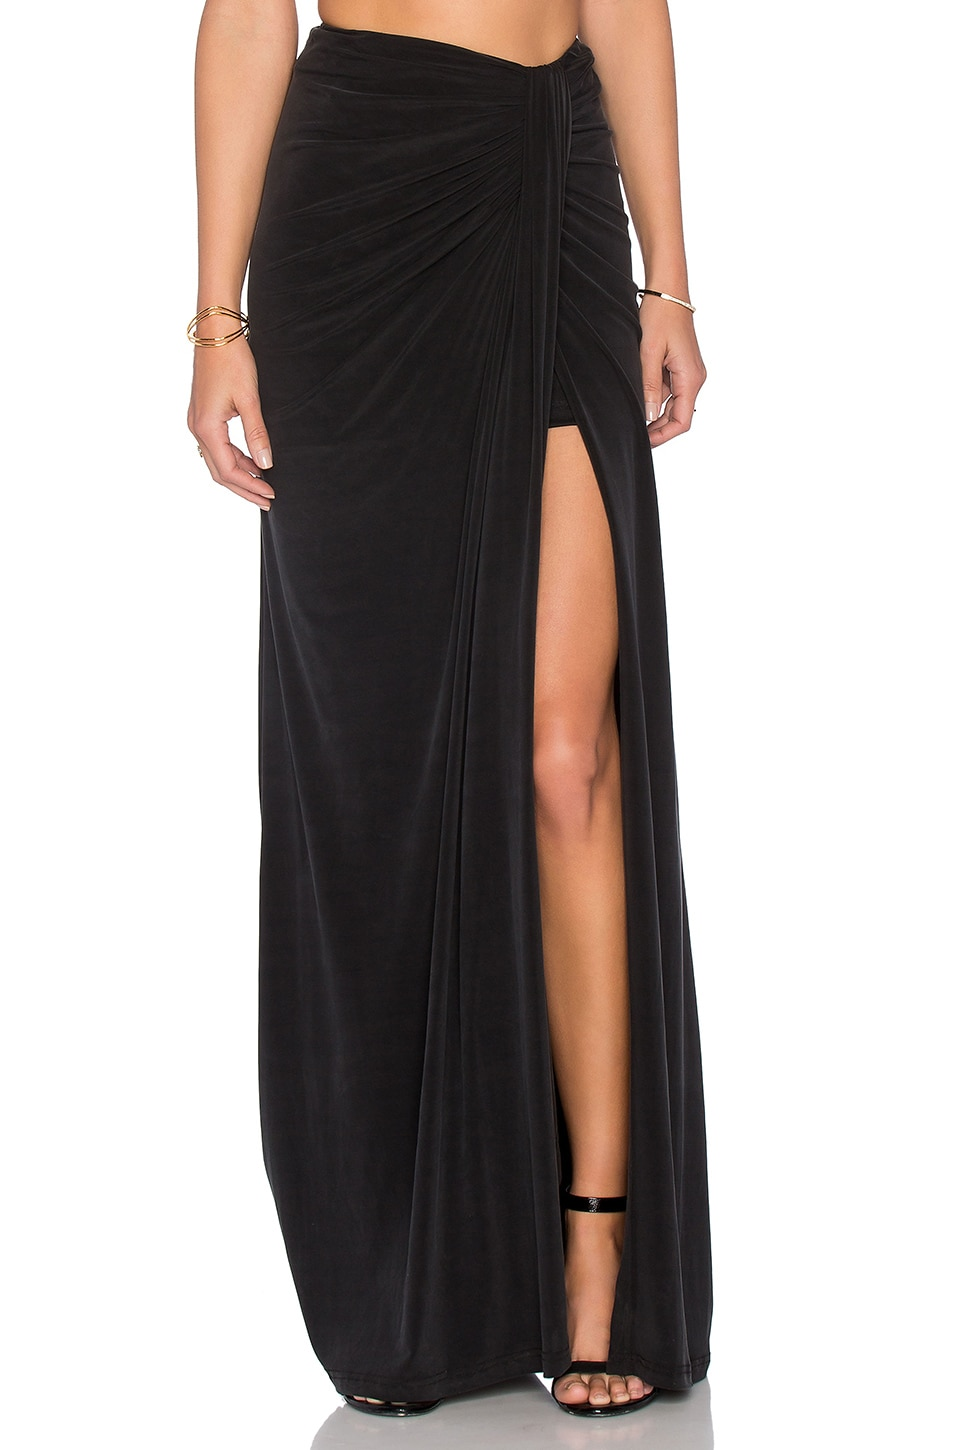 THE JETSET DIARIES Serenity Maxi Skirt in Black